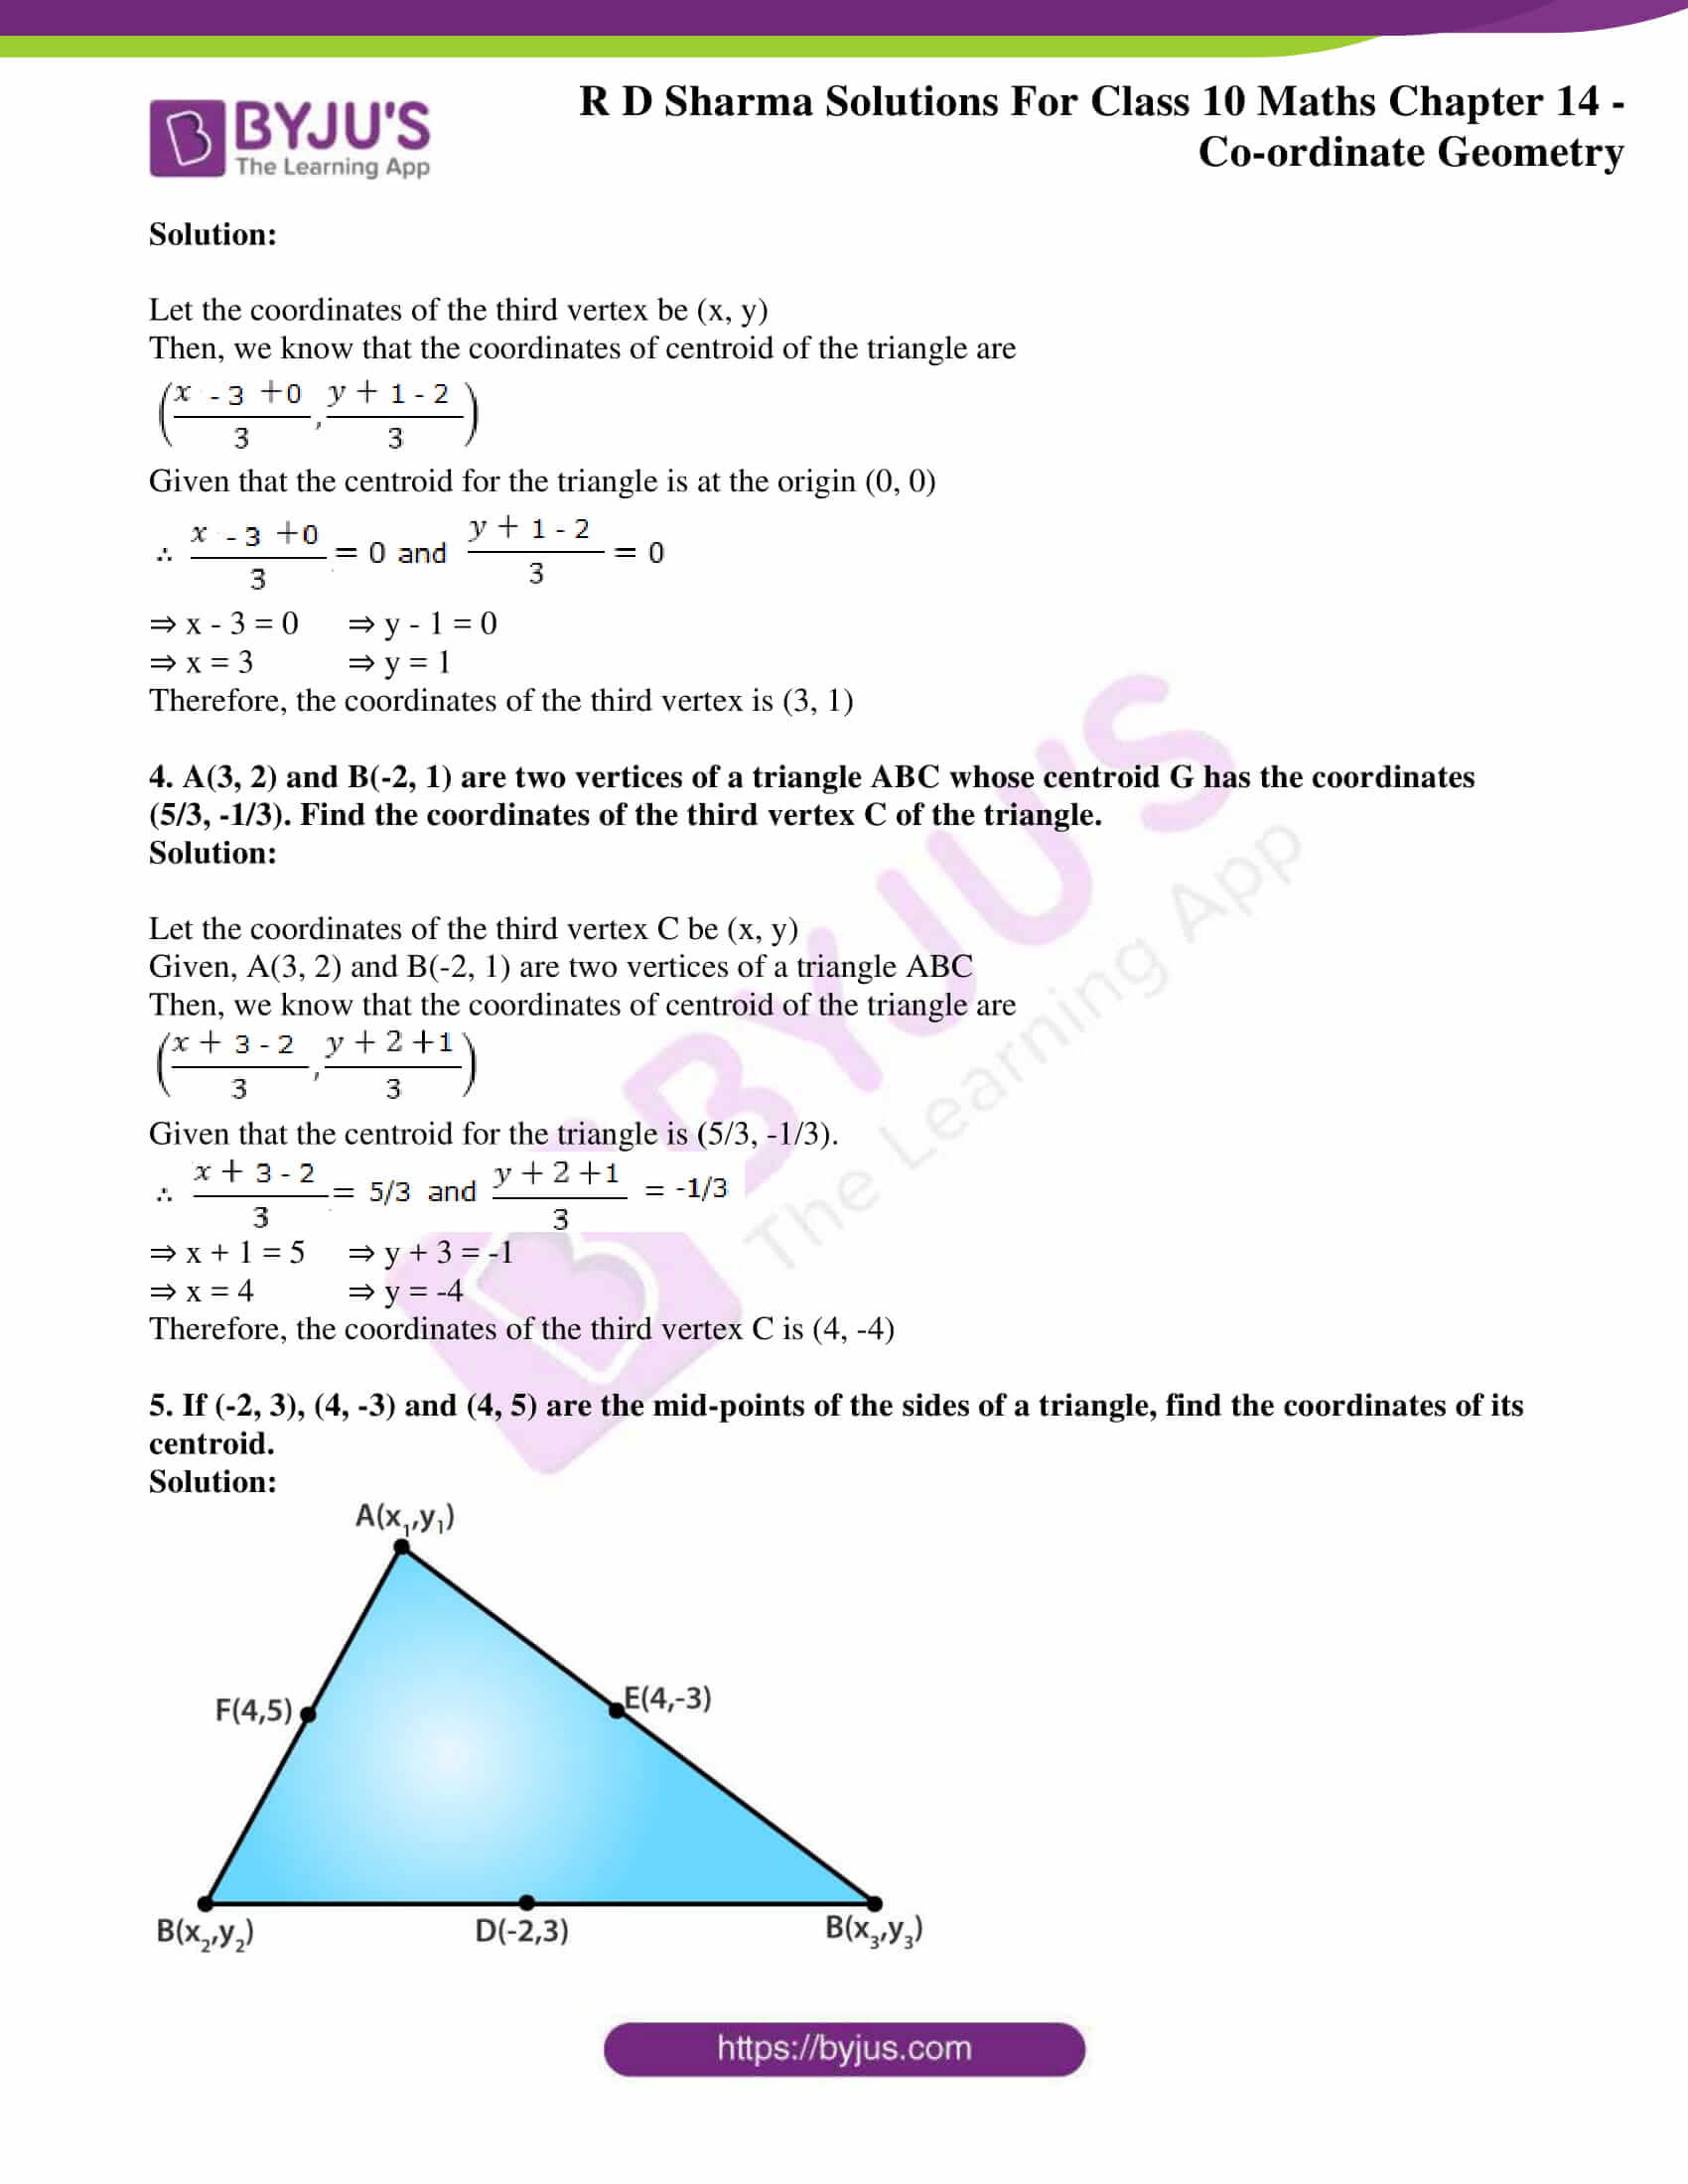 rd sharma solutions class 10 chapter 14 exercise 4